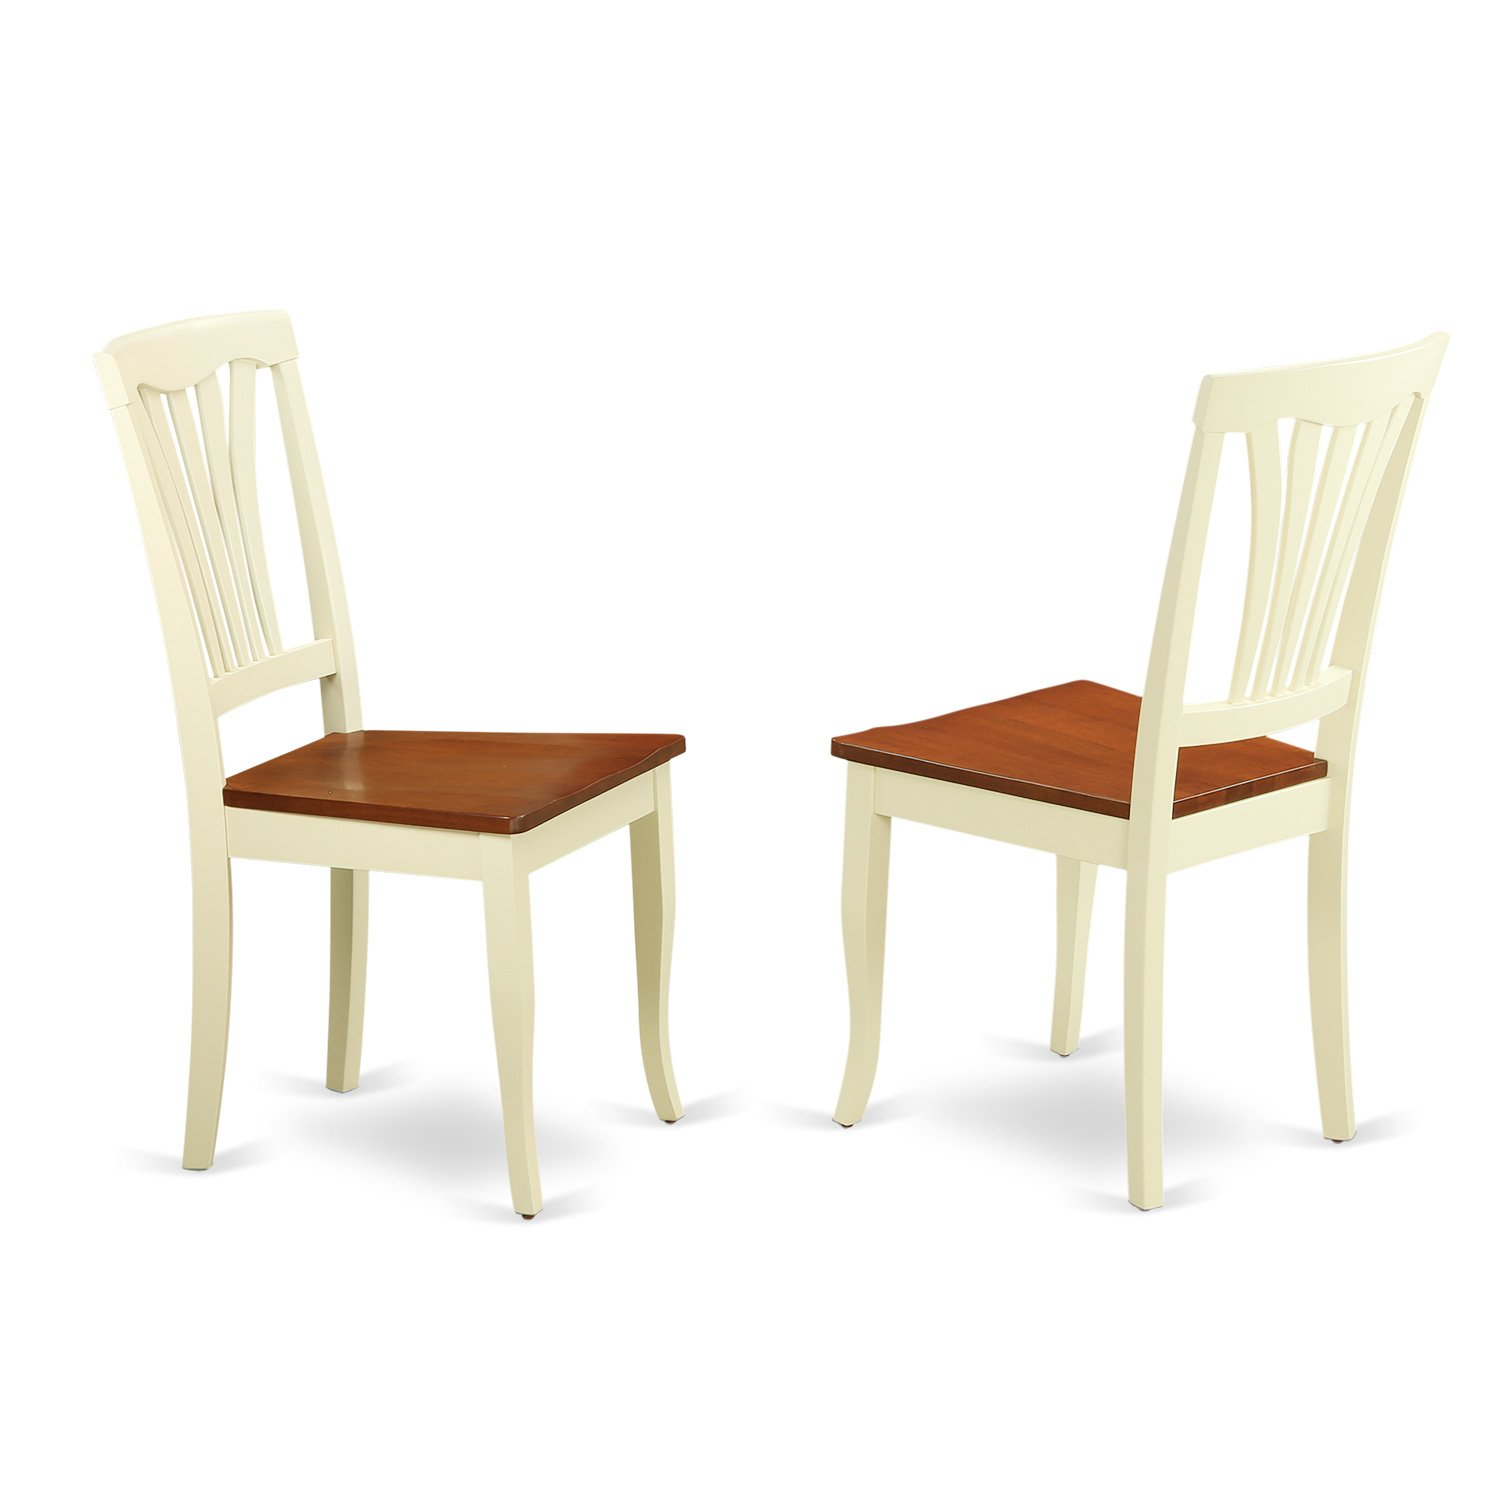 East West Furniture AVC-WHI-W Dining Chair Set with Wood Seat, Buttermilk/Cherry Finish, Set of 2